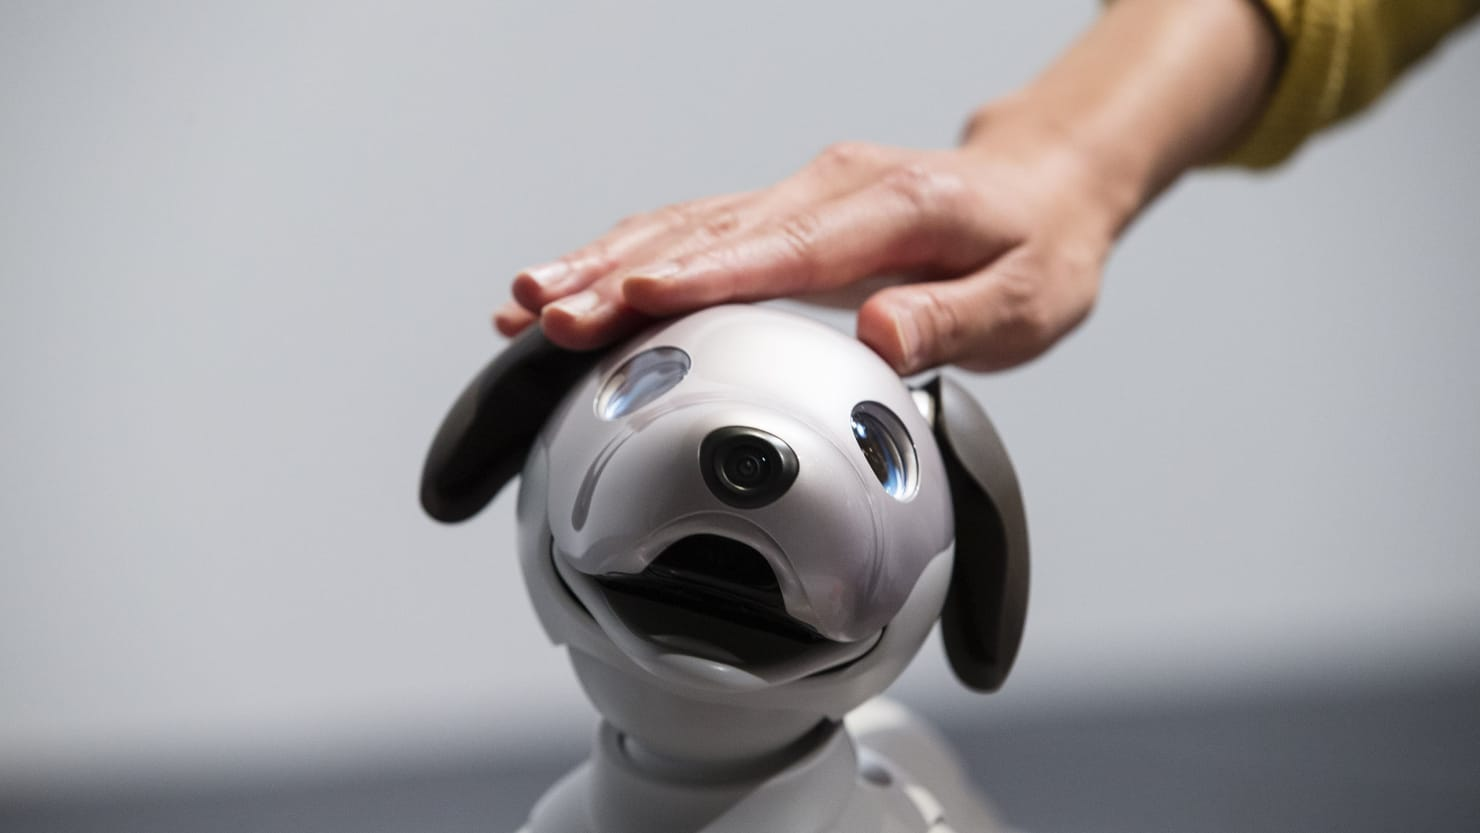 In the Future, We'll Love Our Robot Pets, But Will They Love Us Back?